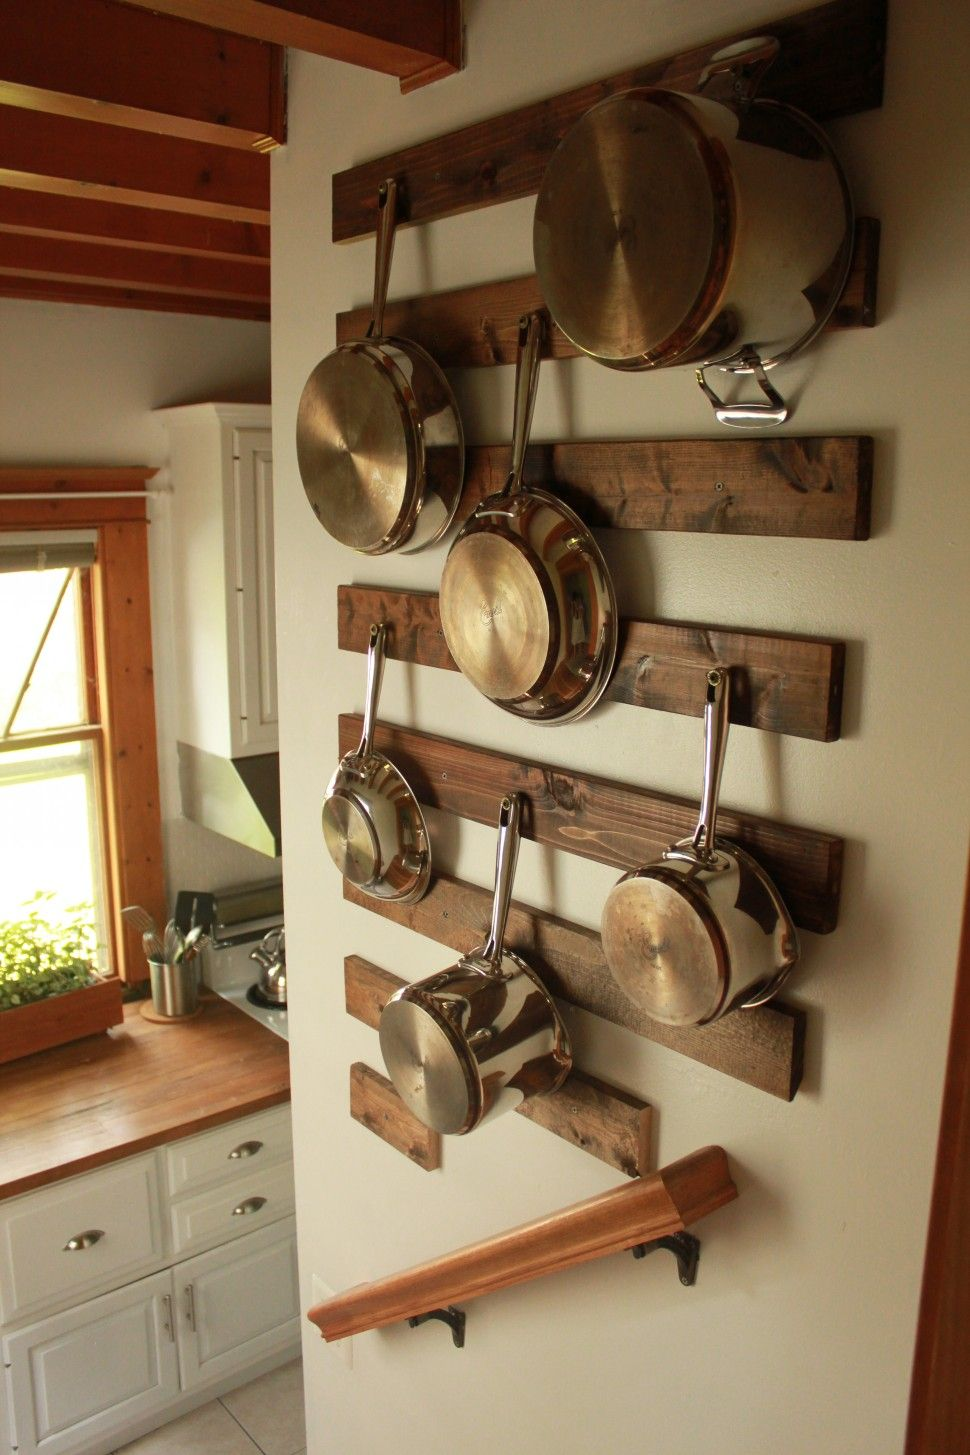 Kitchen Kitchen Hanging Rack Ideas With Stainless Steel Sauce Pot And Frying Pan Also Good Look Kitchen Wall Storage Wall Mounted Pot Rack Kitchen Wall Decor